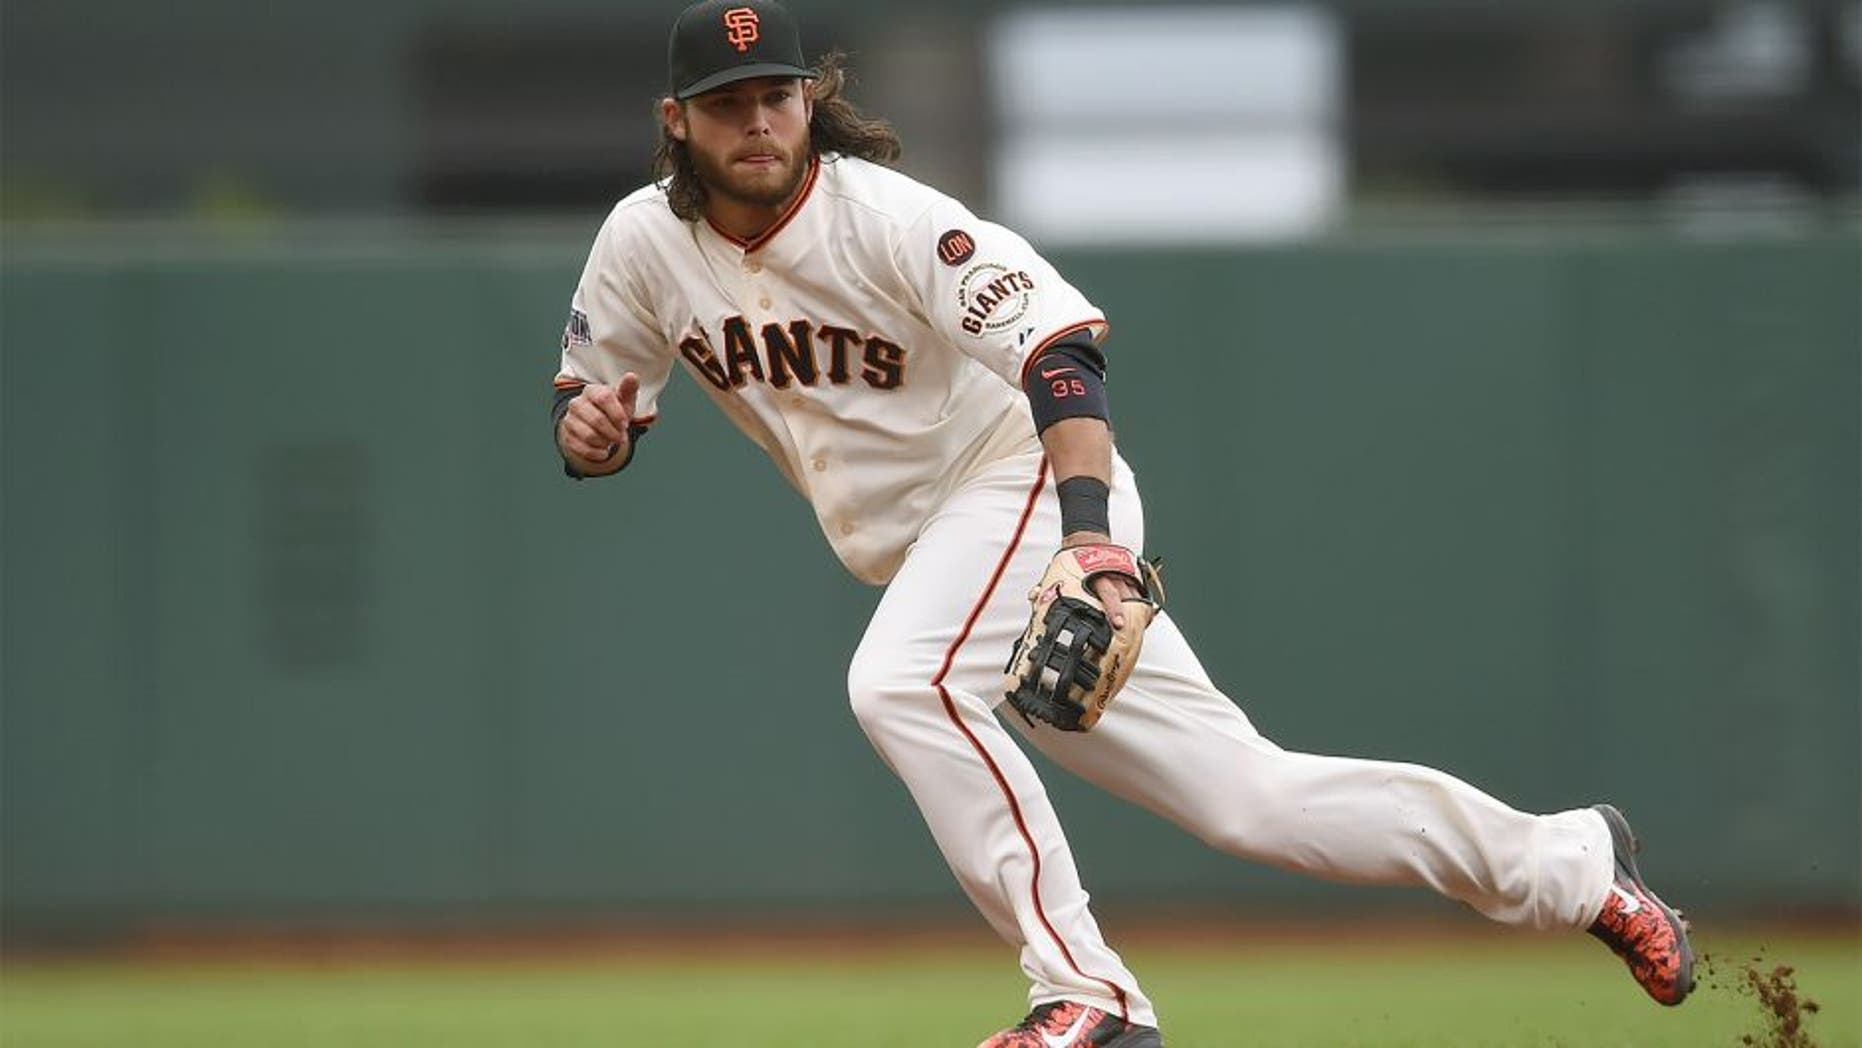 SAN FRANCISCO, CA - JULY 08: Brandon Crawford #35 of the San Francisco Giants reacts to his right of a ball that goes for a basehit off the bat of Wilmer Flores #4 of the New York Mets in the top of the fourth inning at AT&T Park on July 8, 2015 in San Francisco, California. (Photo by Thearon W. Henderson/Getty Images)